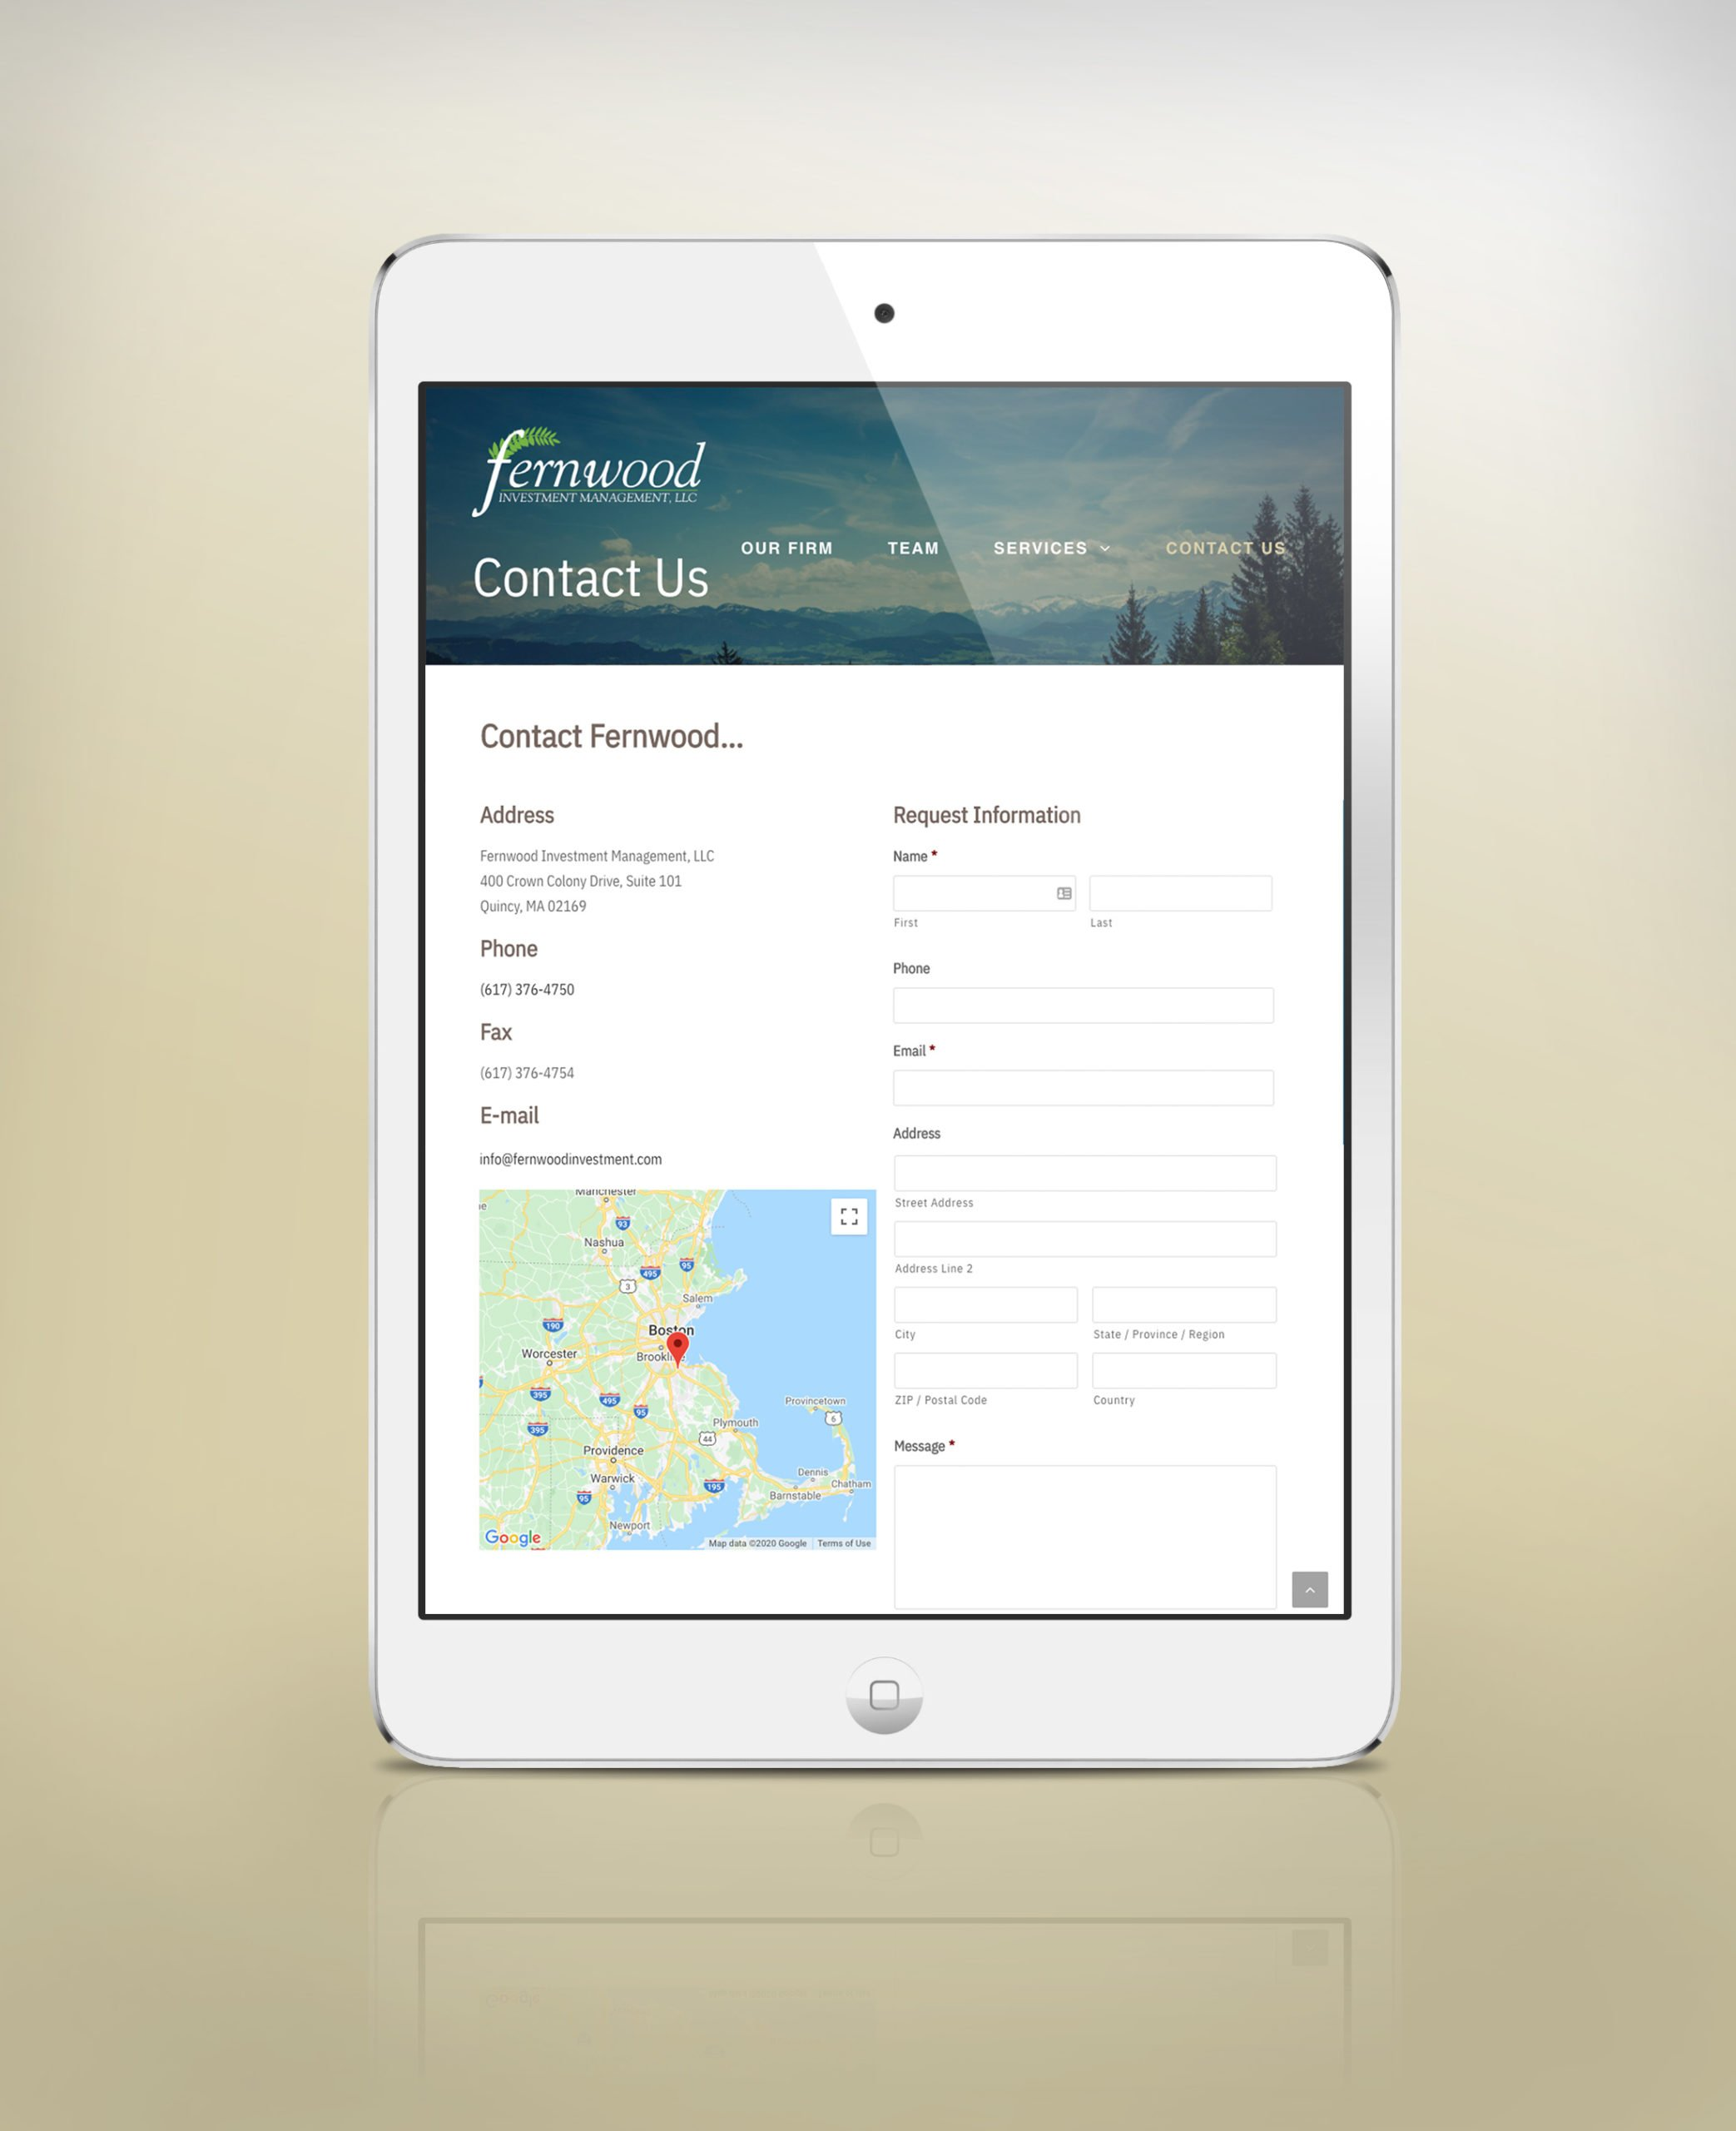 fernwood on ipad - contact page